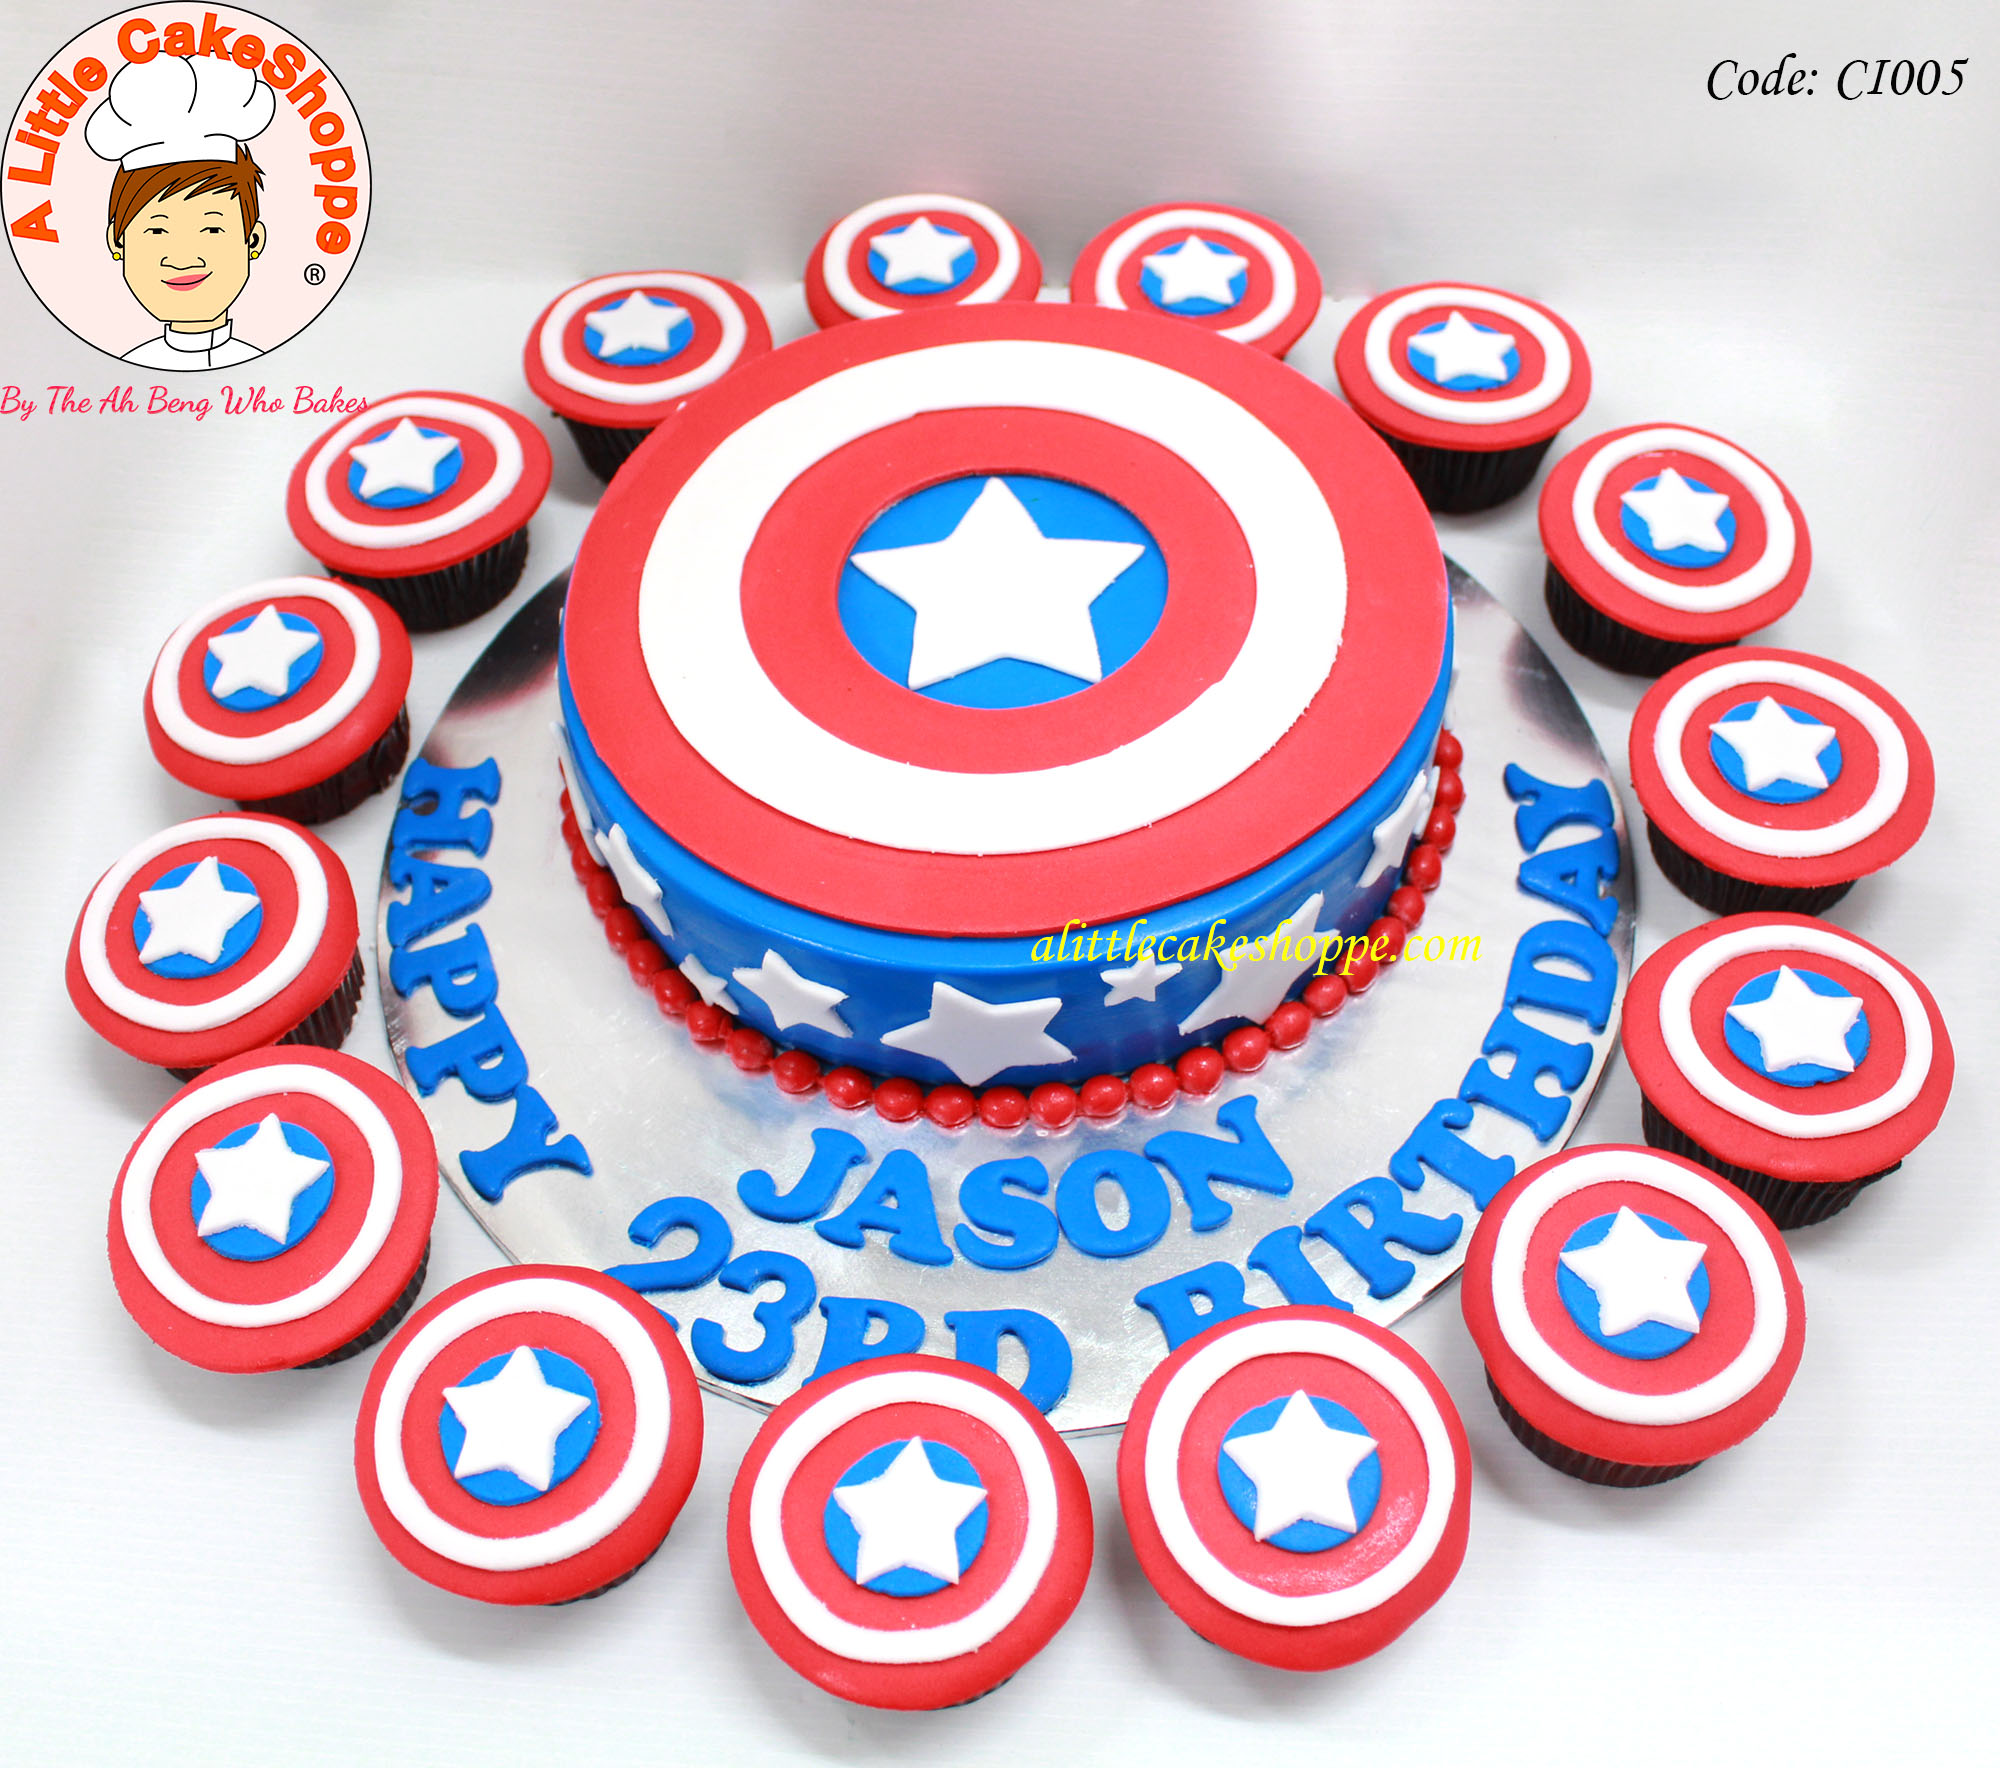 Best Customised Cake Shop Singapore custom cake 2D 3D birthday cake cupcakes desserts wedding corporate events anniversary 1st birthday 21st birthday fondant fresh cream buttercream cakes alittlecakeshoppe a little cake shoppe compliments review singapore bakers SG cake shop cakeshop ah beng who bakes superhero captain america